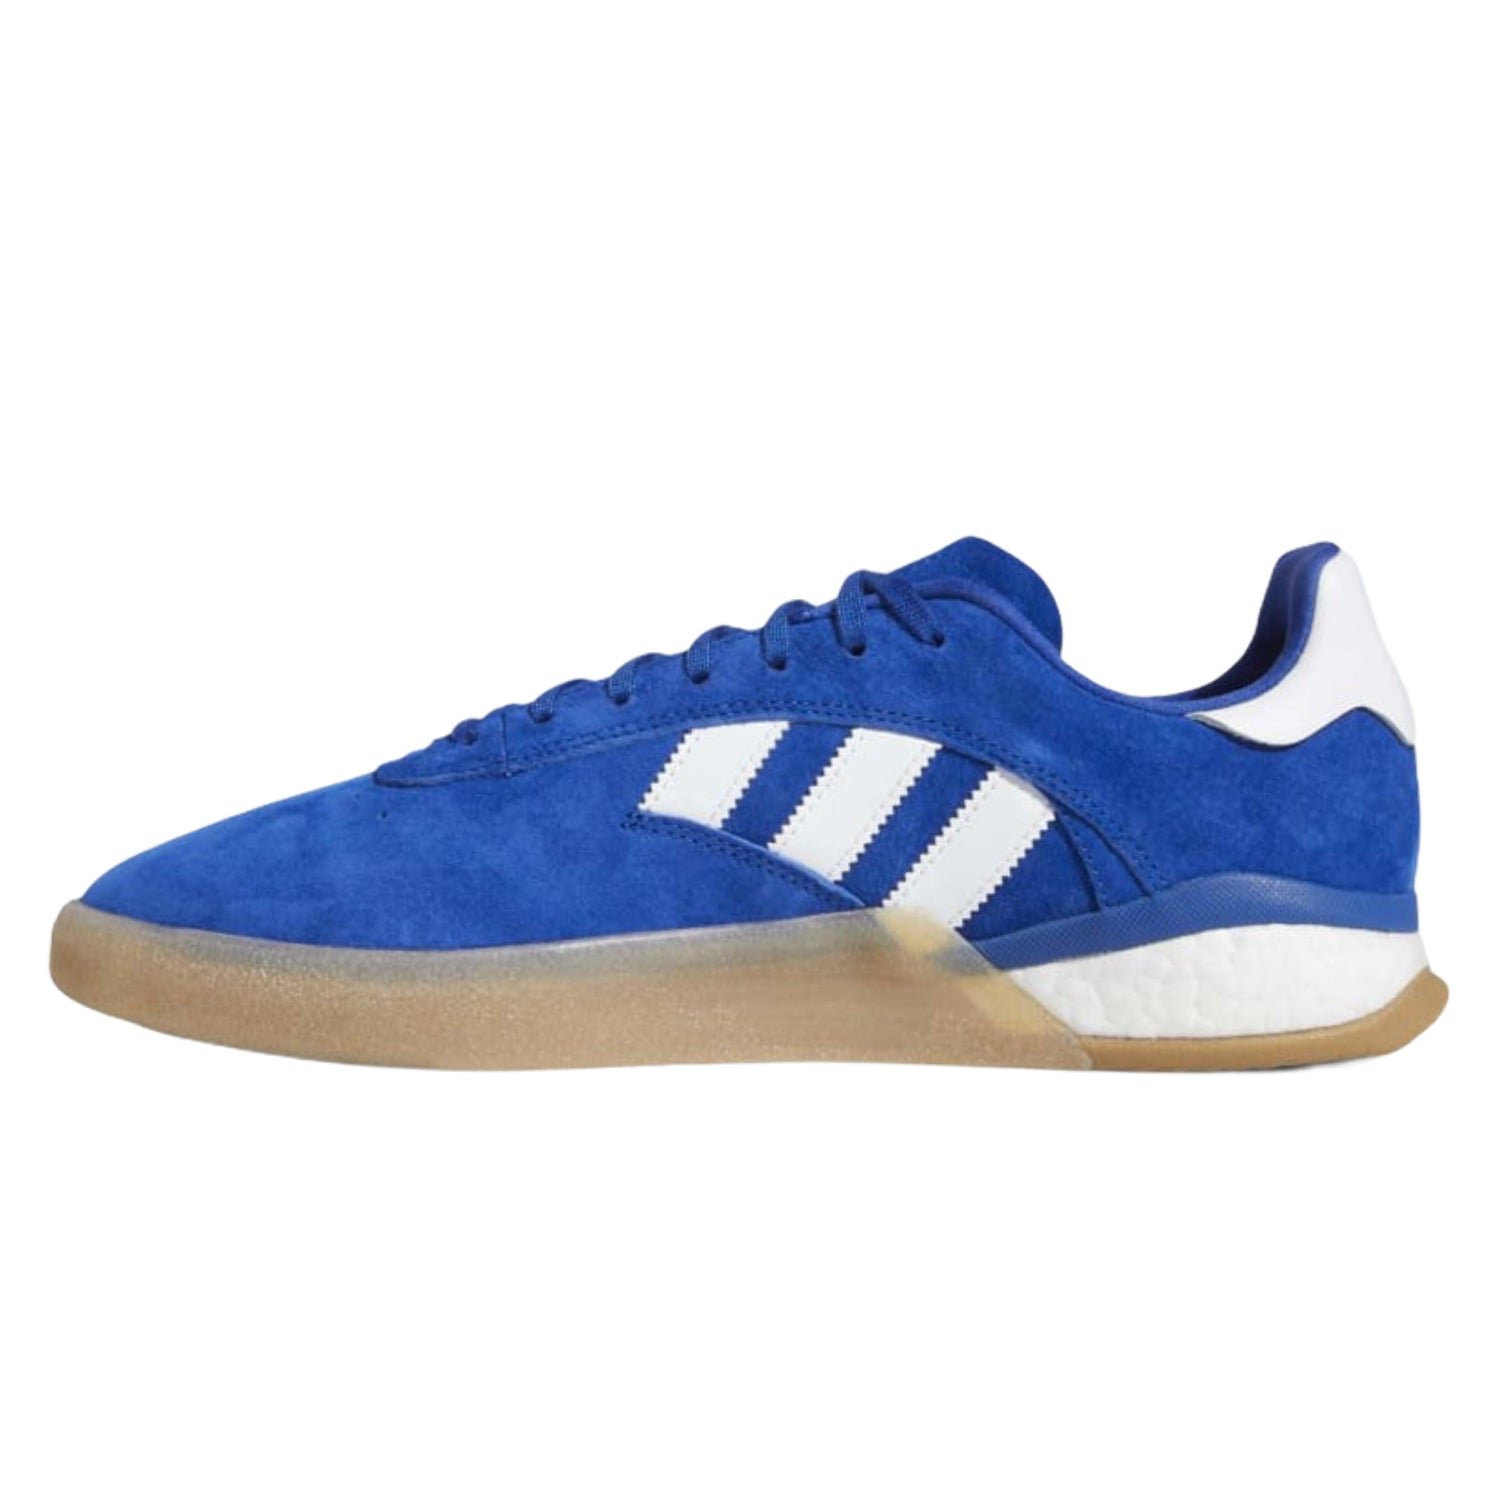 Adidas 3ST.004 Royal/White/Gum